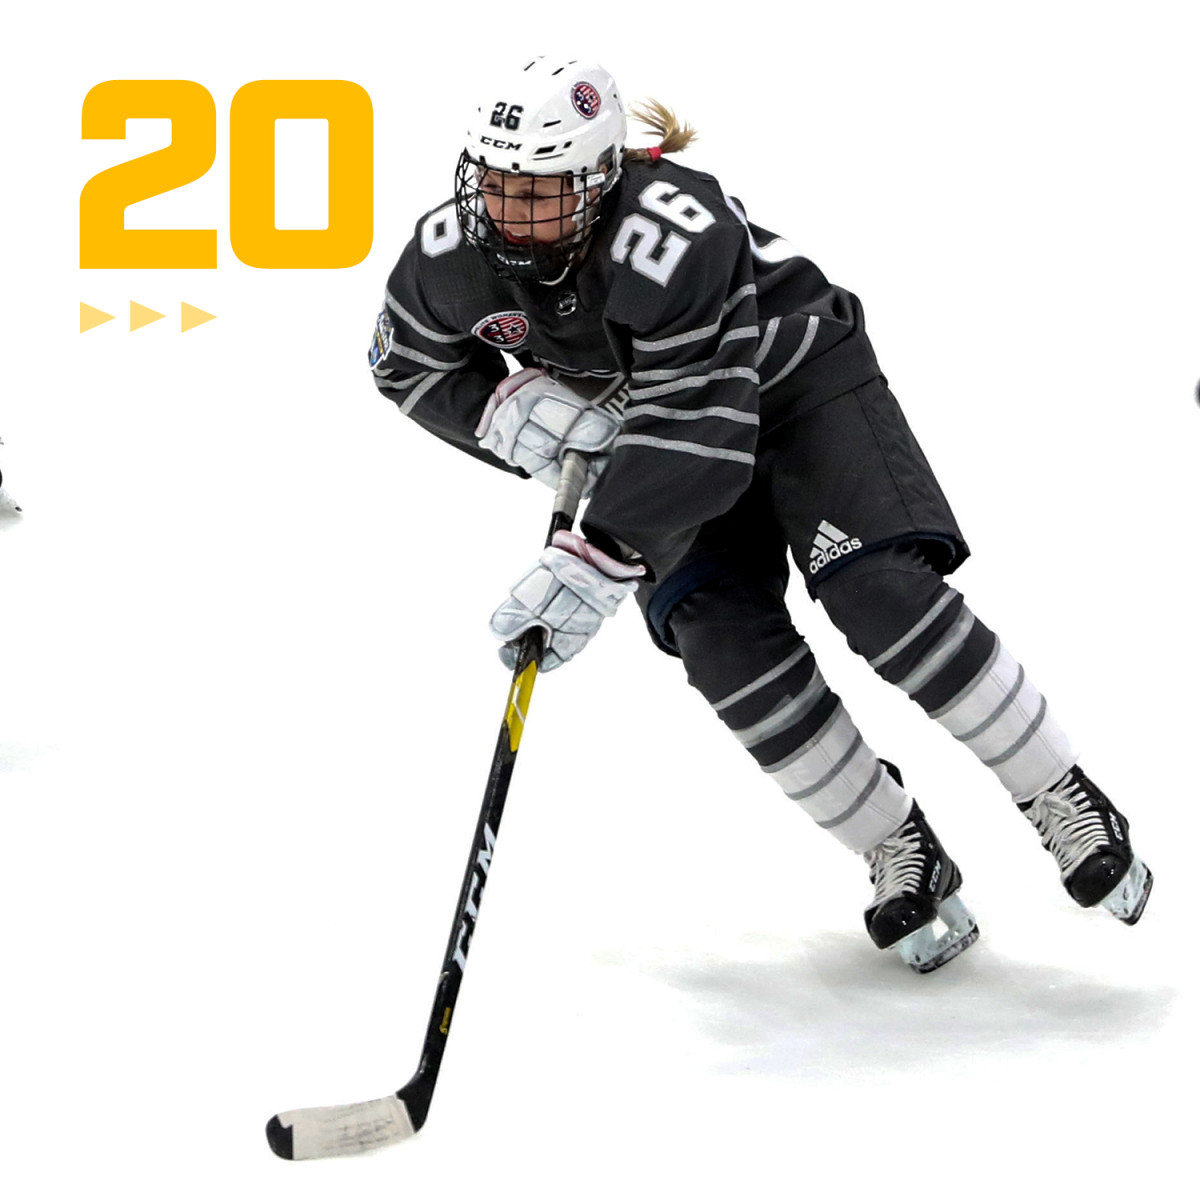 Kendall_Coyne_Schofield_01_GRAPHIC_F20